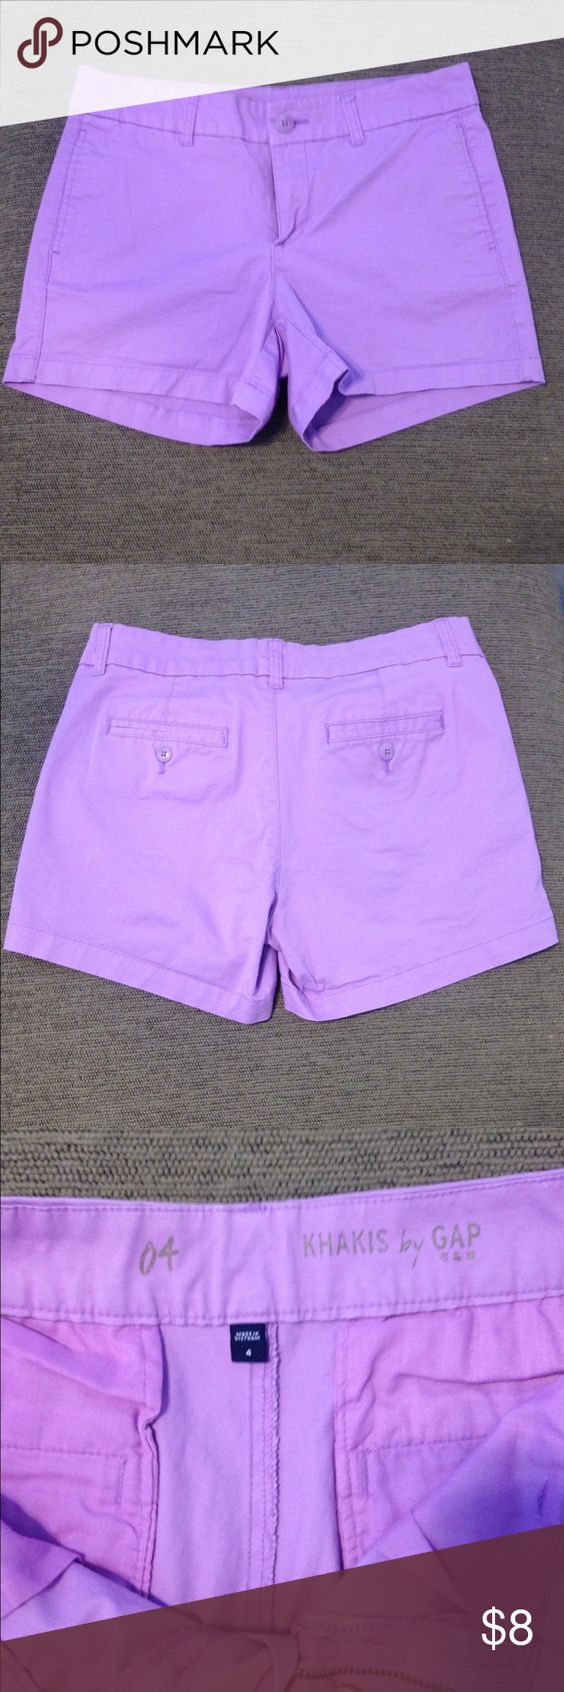 Gap Khaki Shorts Purple khaki shorts in very good condition. Super comfortable, modest length, and a pop of color to any outfit. Have front and back pockets. No stains, holes, or major fading of color. Look close to brand new still.                  Bundle and Save 25% GAP Shorts